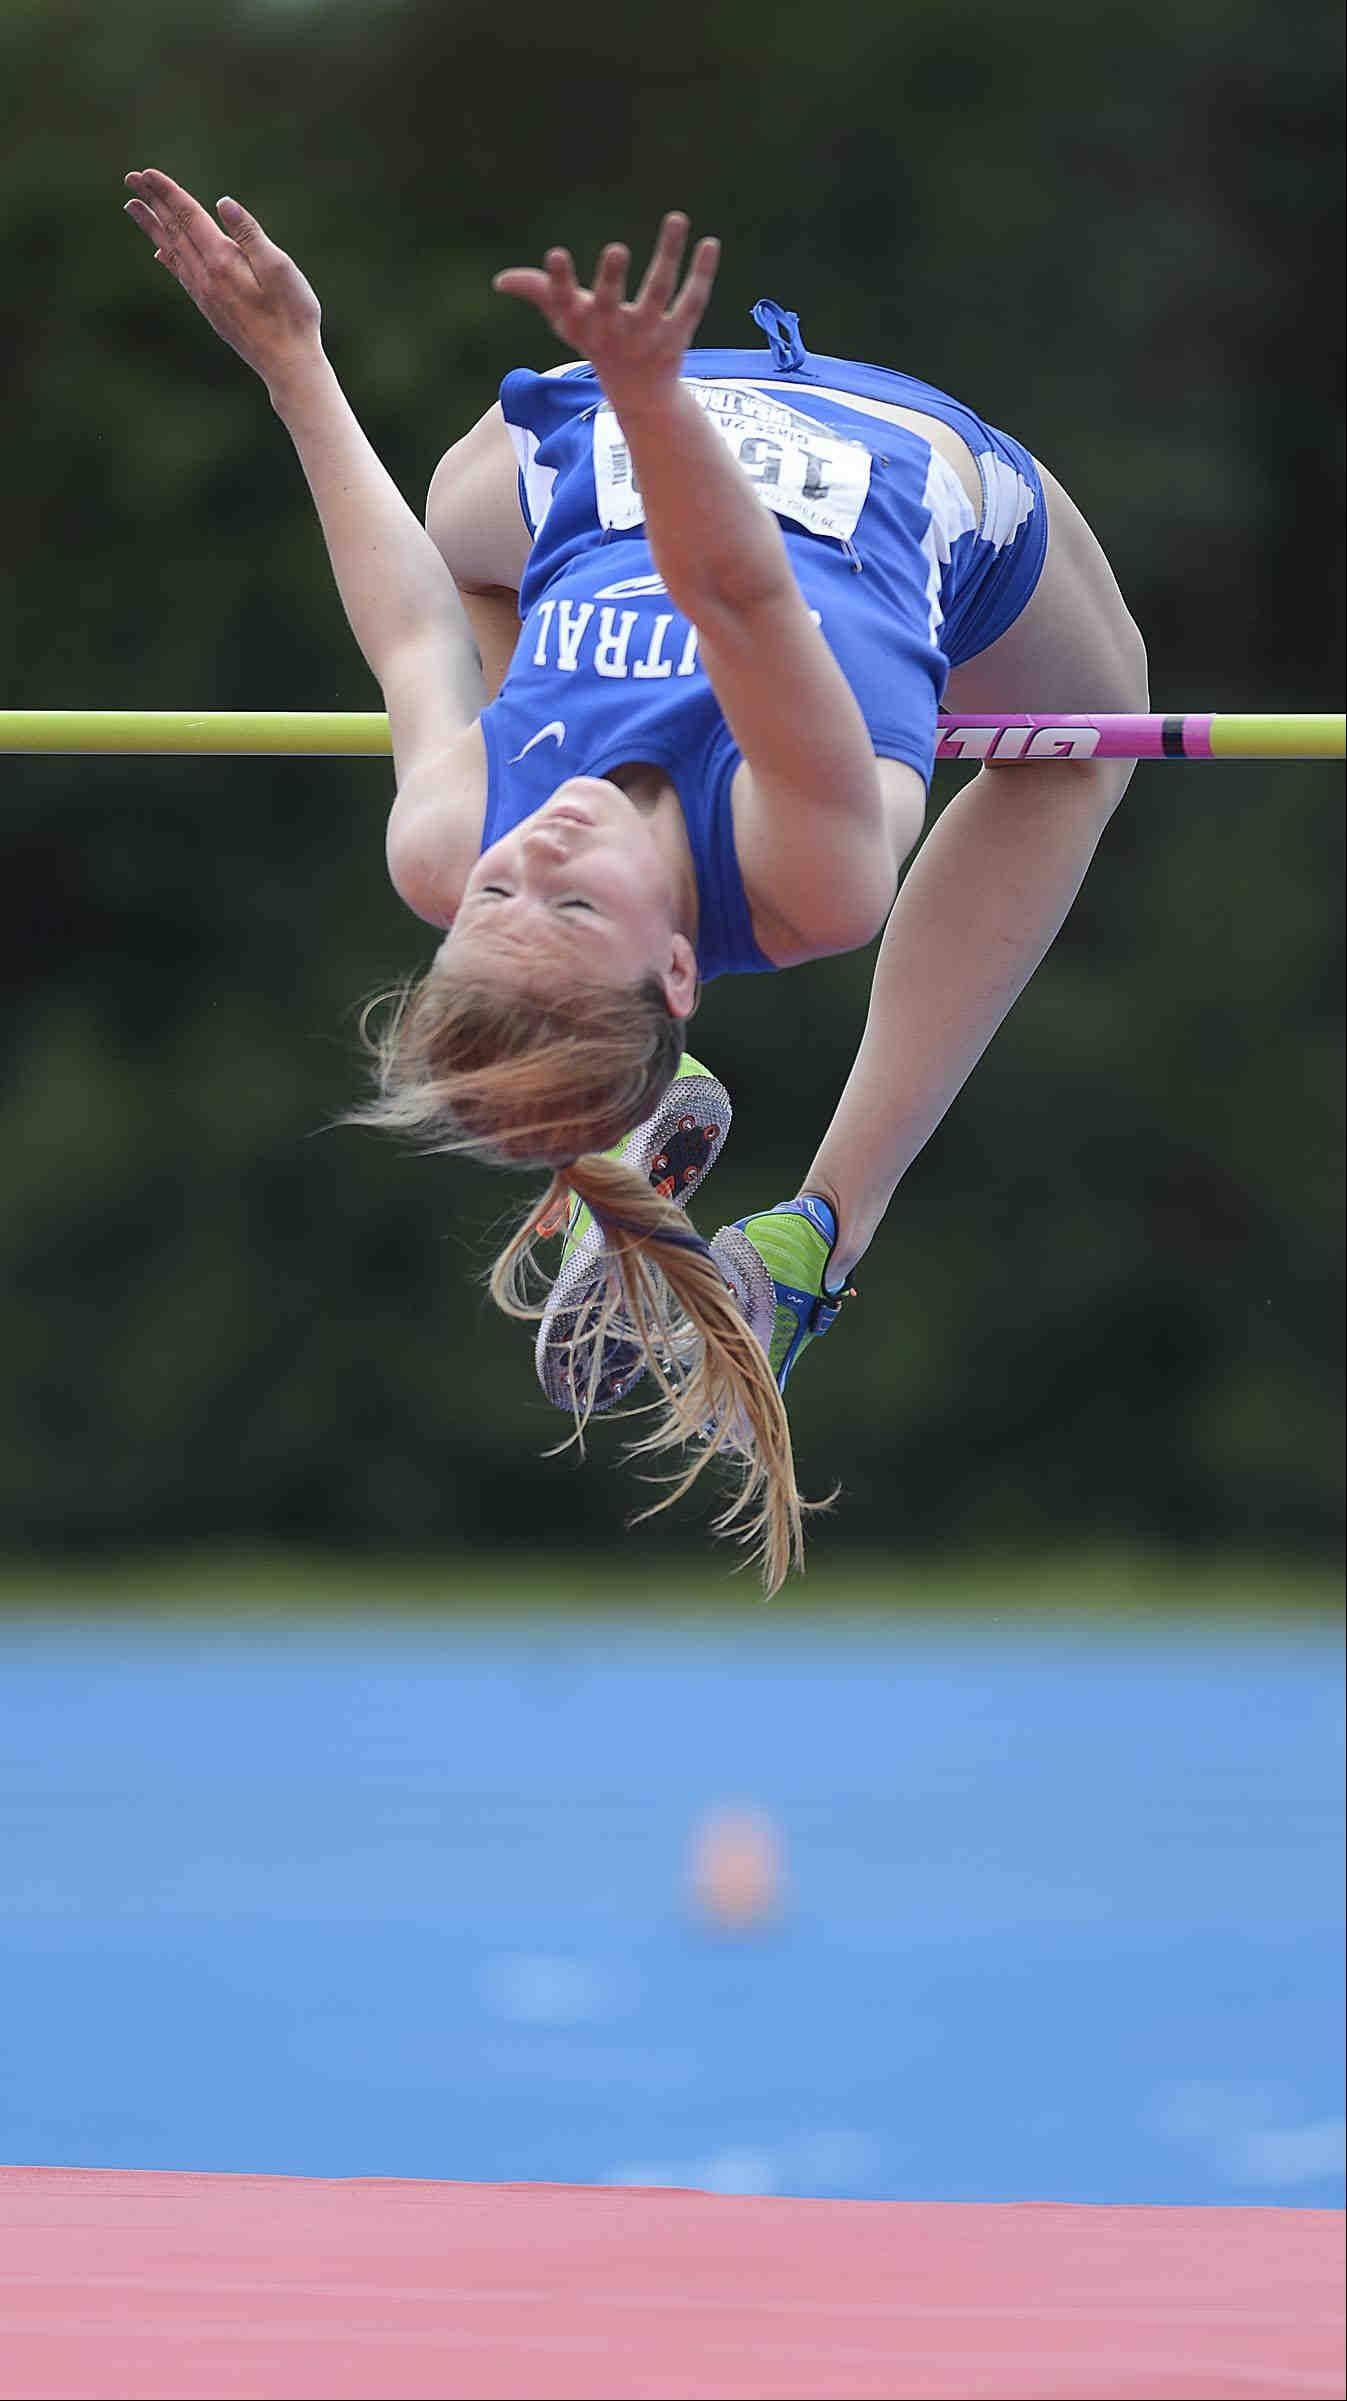 Burlington Central's Katie Trupp clears the high jump bar during Saturday's Class 2A girls state track and field finals in Charleston.